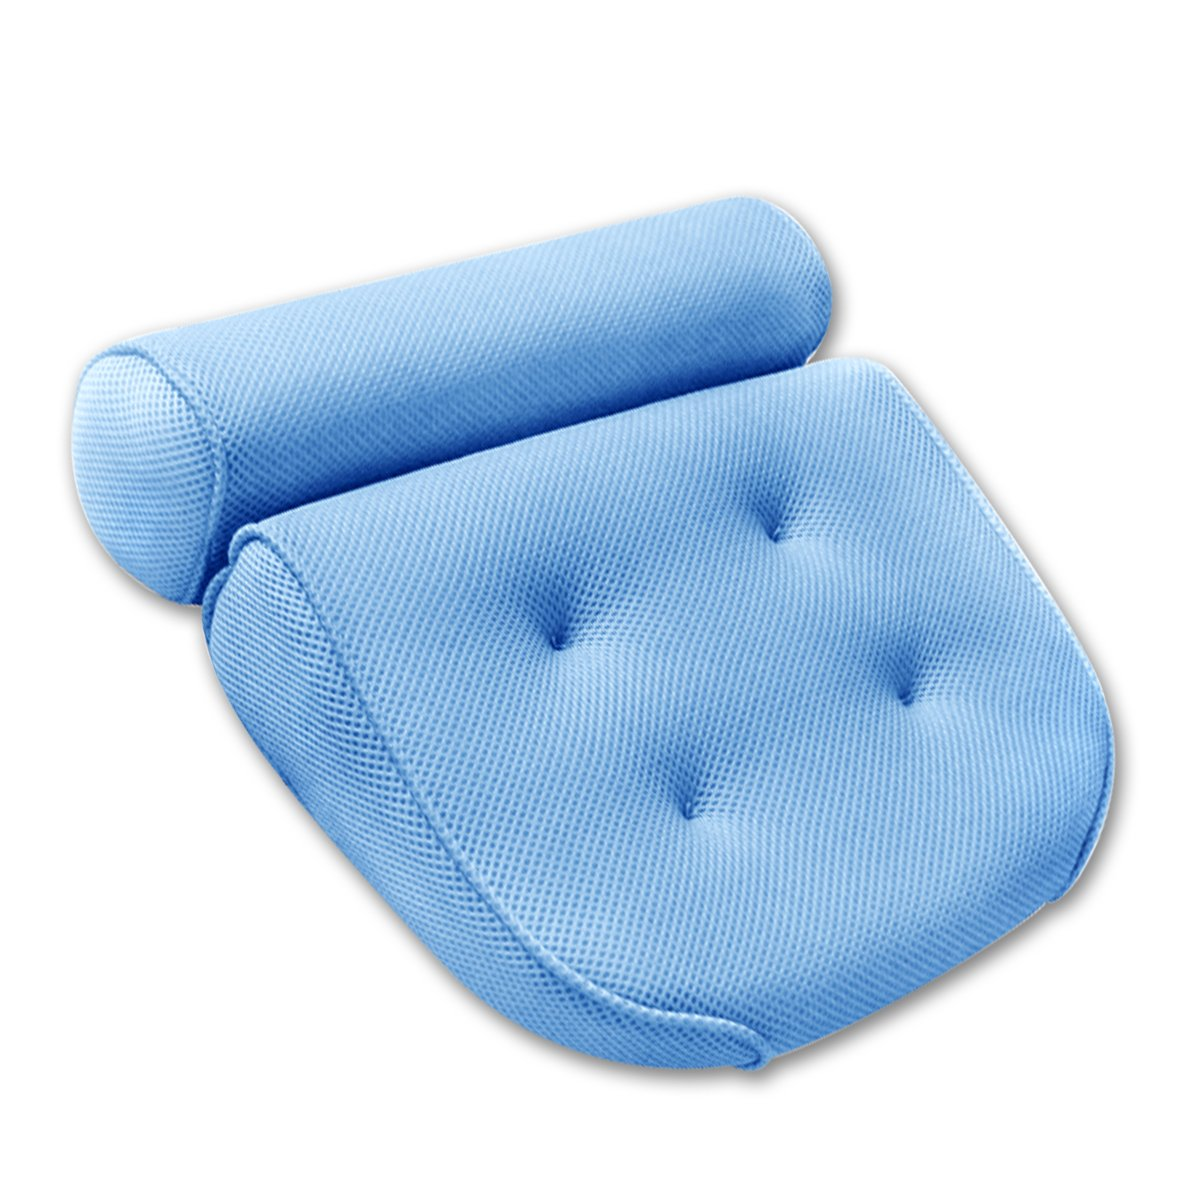 Bath-tub Pillow for Home Spa and Rest, Relaxation Bath tub Cushion with Strong Suction Cups, Mold & Mildew Resistant, 2-Panel Odor Free Bath Pillows - Blue AntArt